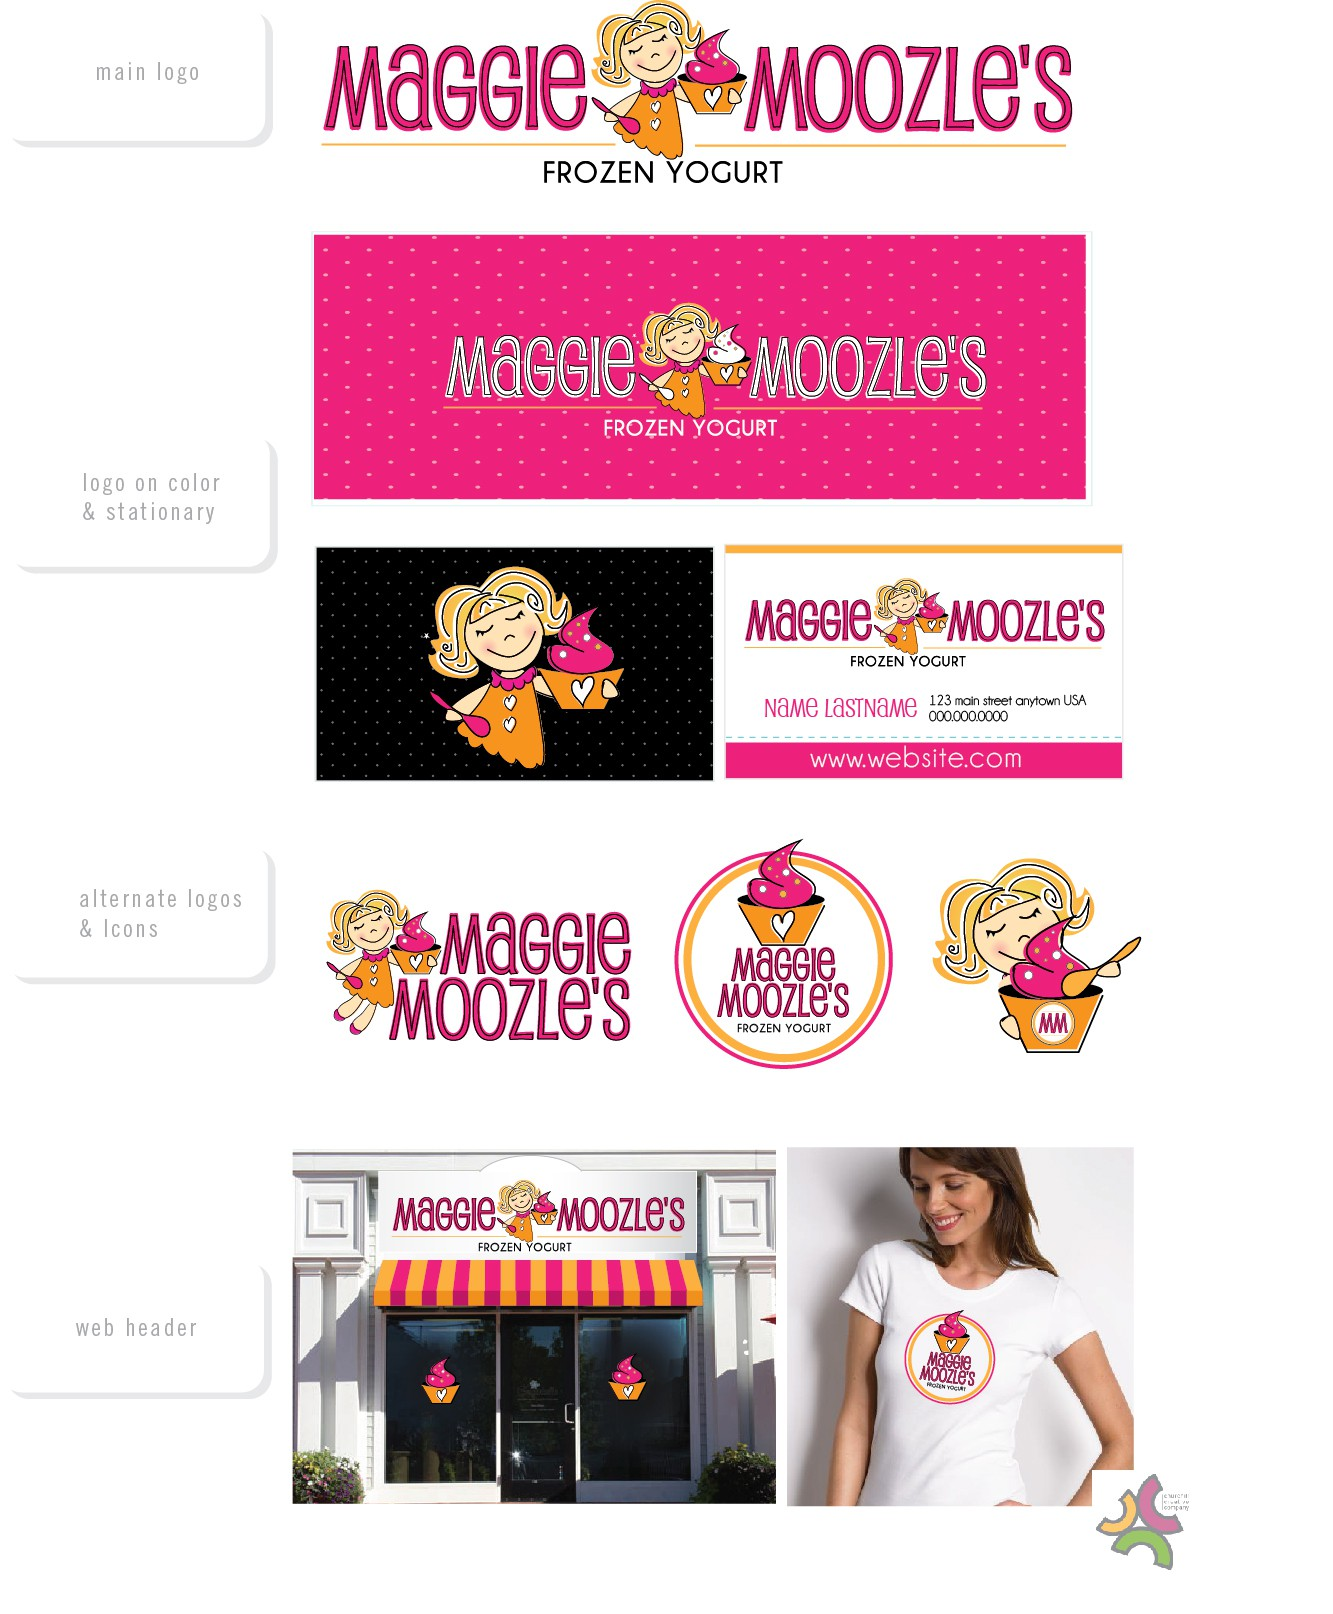 Help Maggie Moozle's  with a new logo